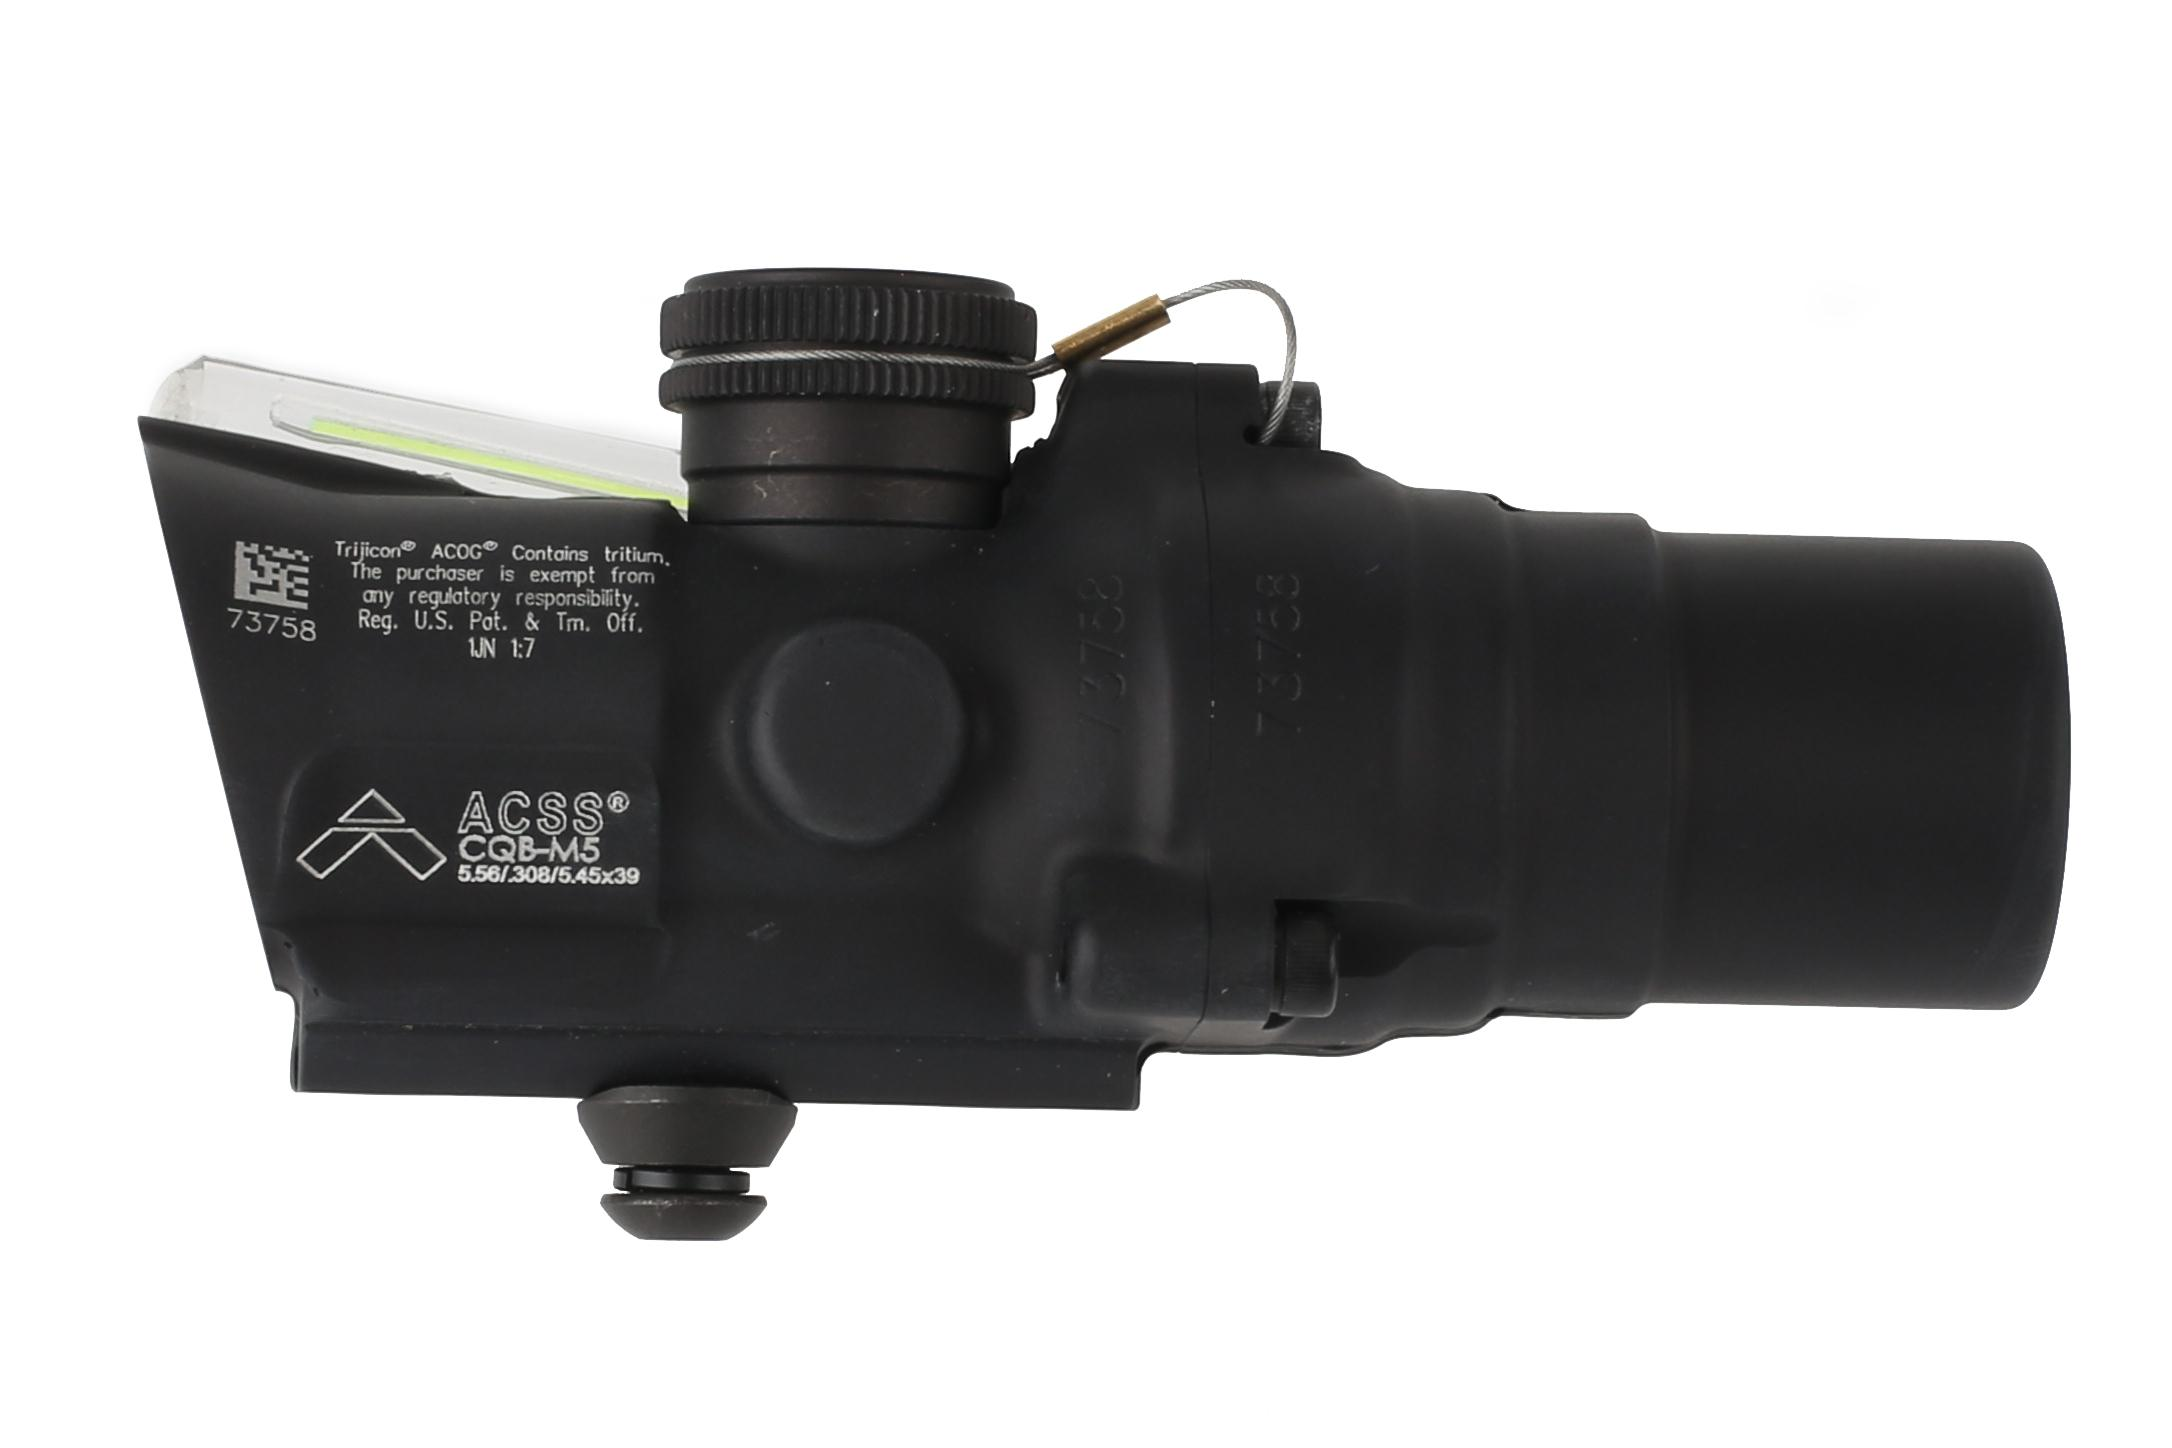 Trijicon green ACOG 1.5x16mm compact scope with ACSS CQB-M5 reticle features a tall base for AR-pattern rifles